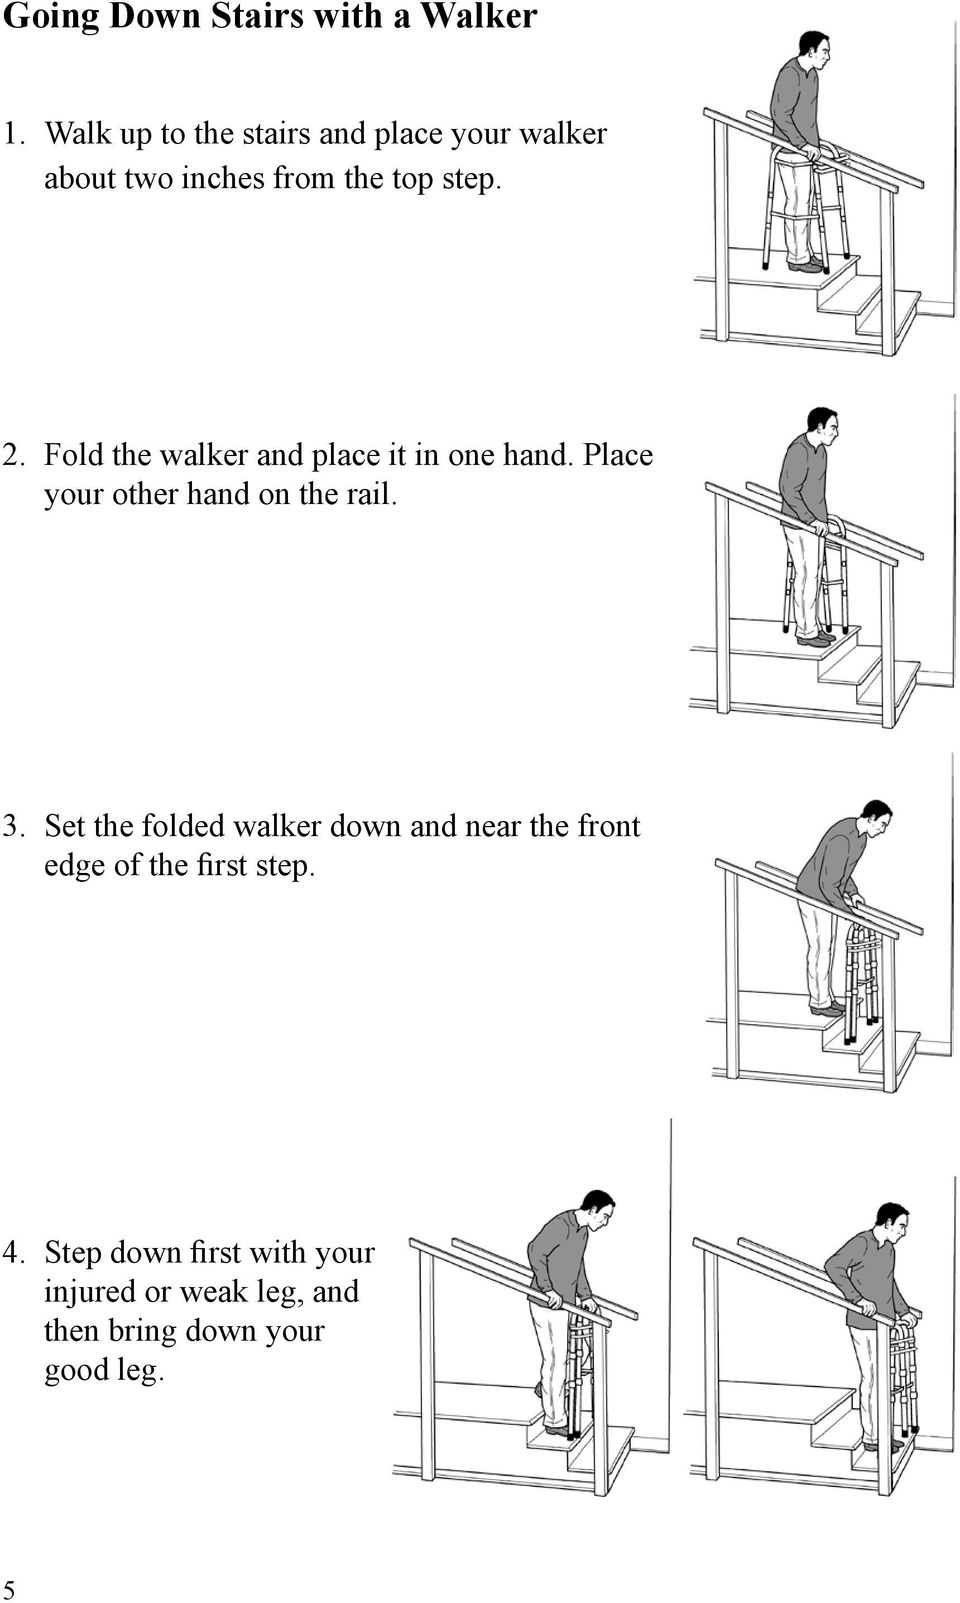 Fold the walker and place it in one hand. Place your other hand on the rail. 3.